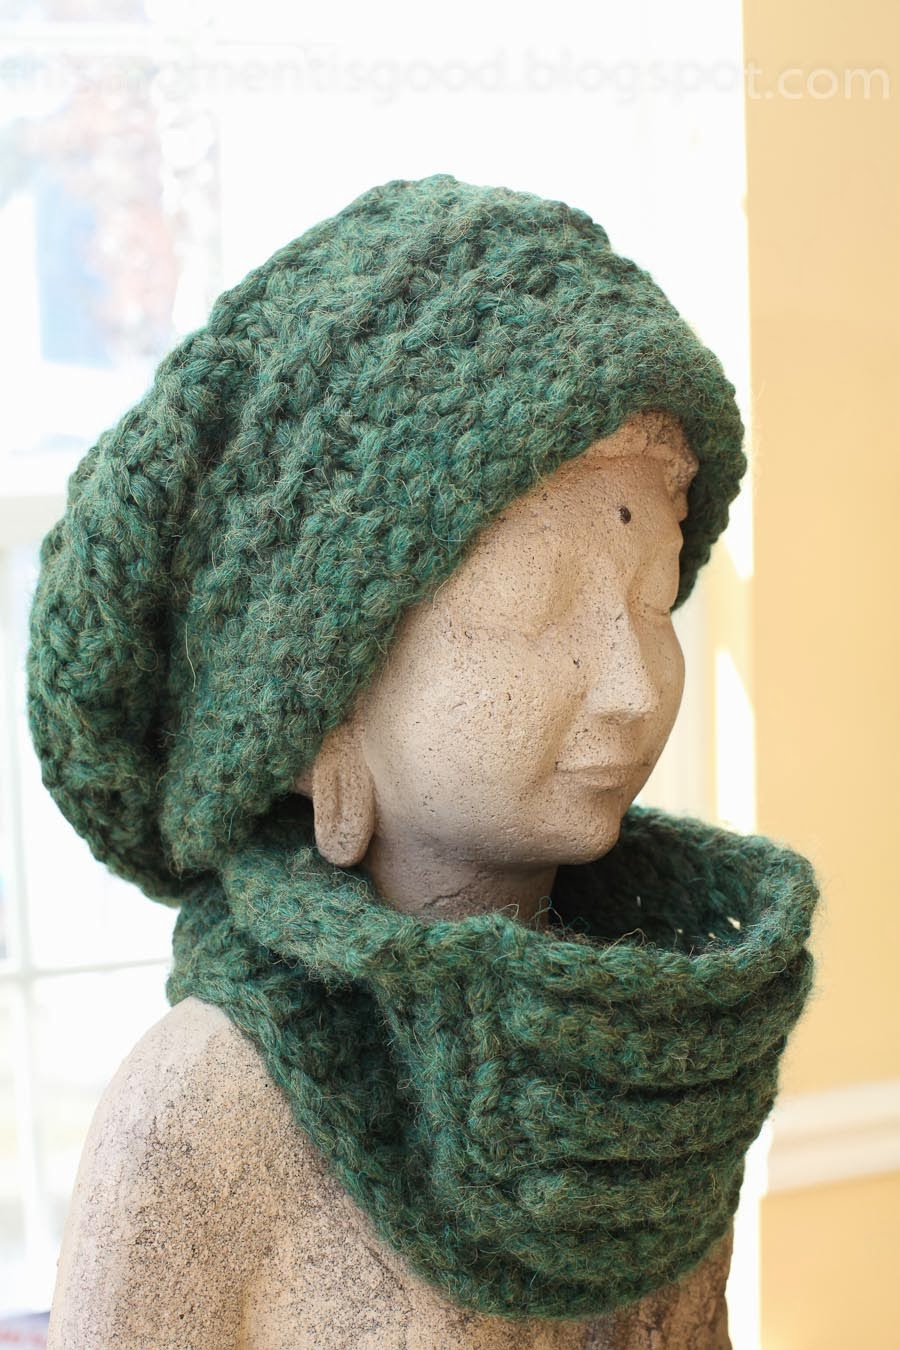 Loom Knitting Lace Pattern : Loom Knitting by This Moment is Good!: LOOM KNIT LACE ...